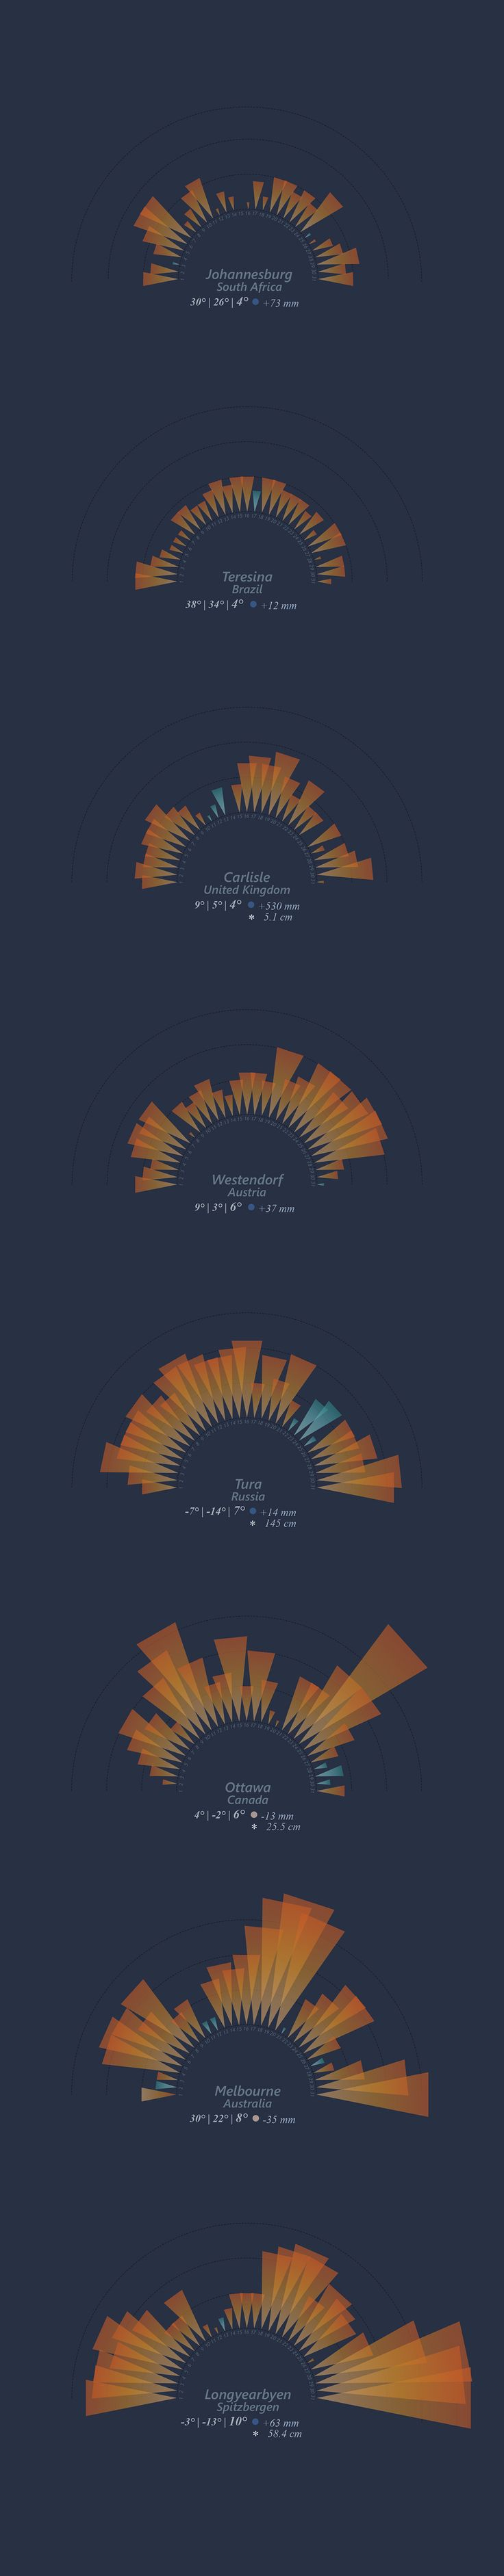 STUDIO TERP's latest #dataviz project: It's gettin hot out here. Sharing info on the extreme #climat #temperatures of December 2015.